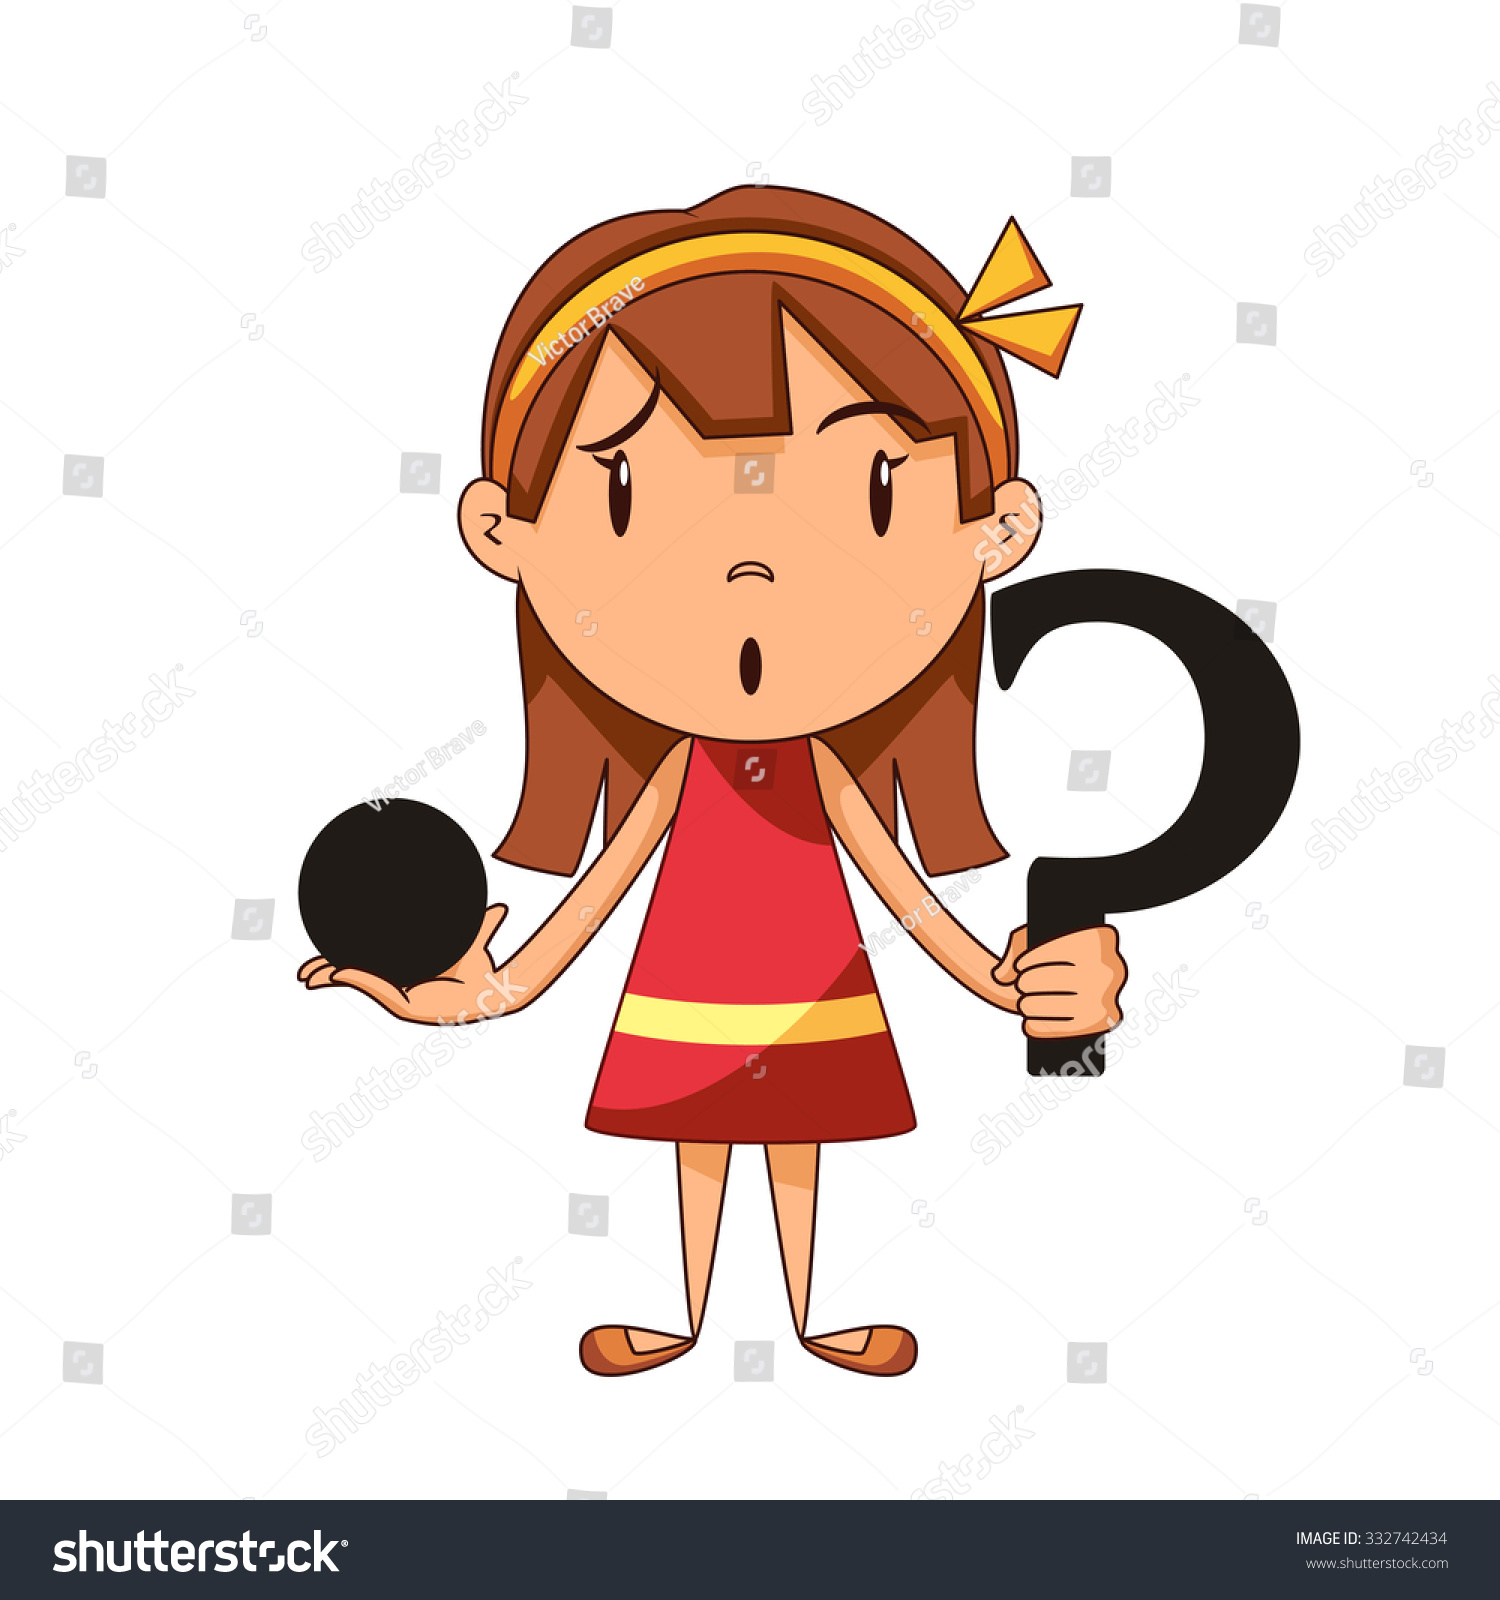 Confused Girl Riddle Vector Illustration Stock Vector